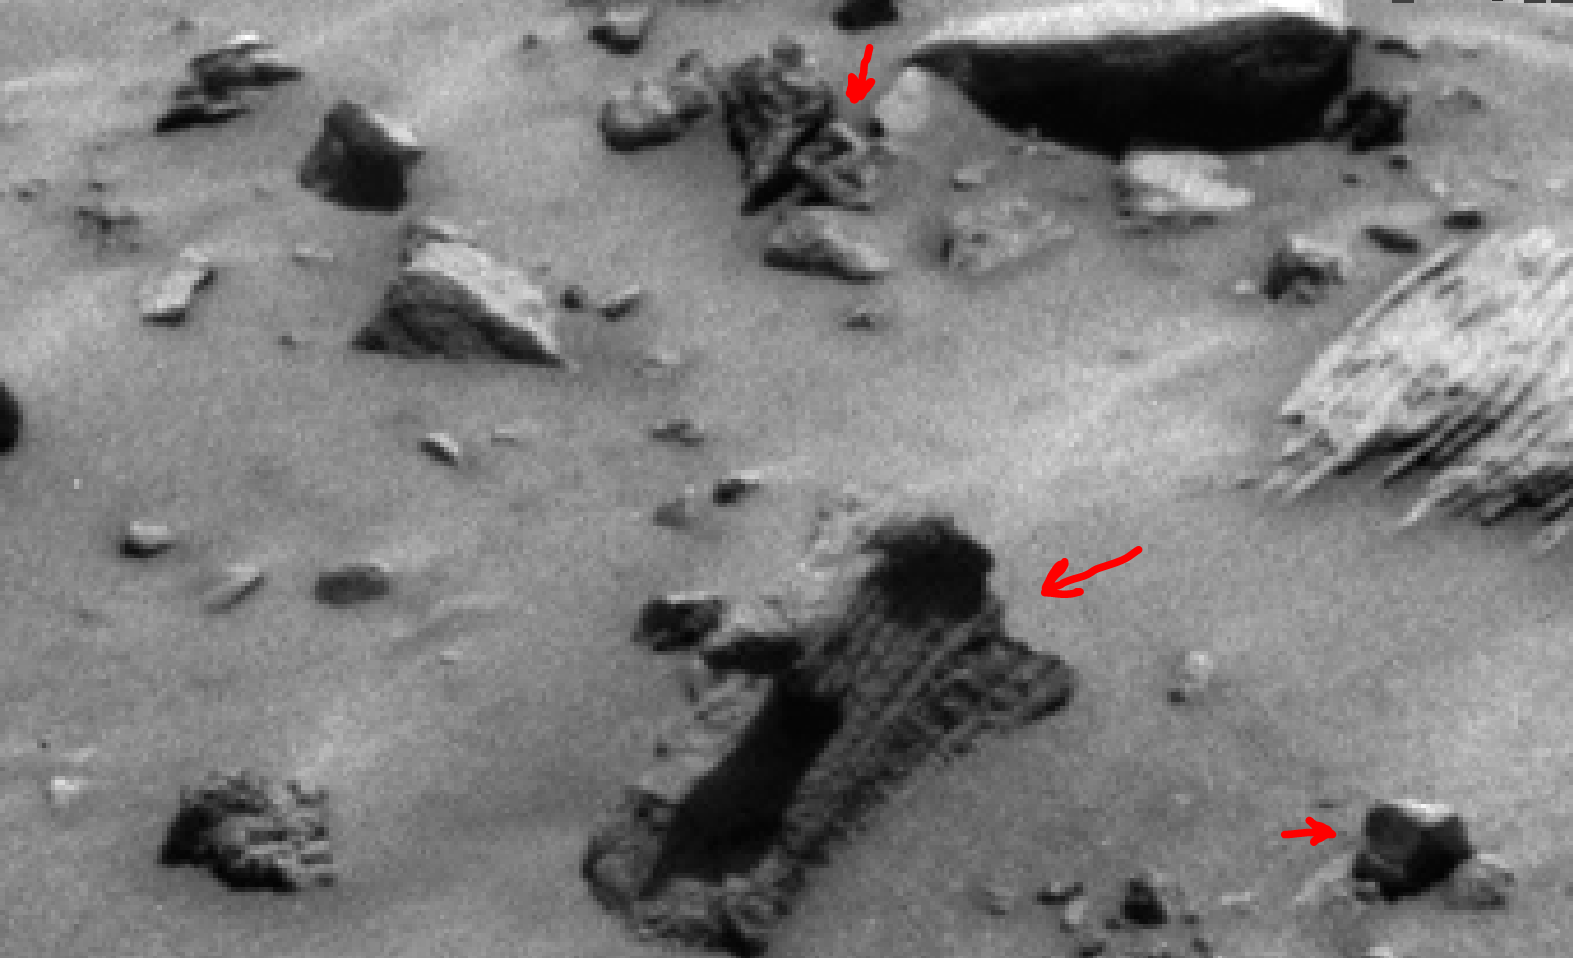 mars sol 1400 anomaly artifacts 3 was life on mars